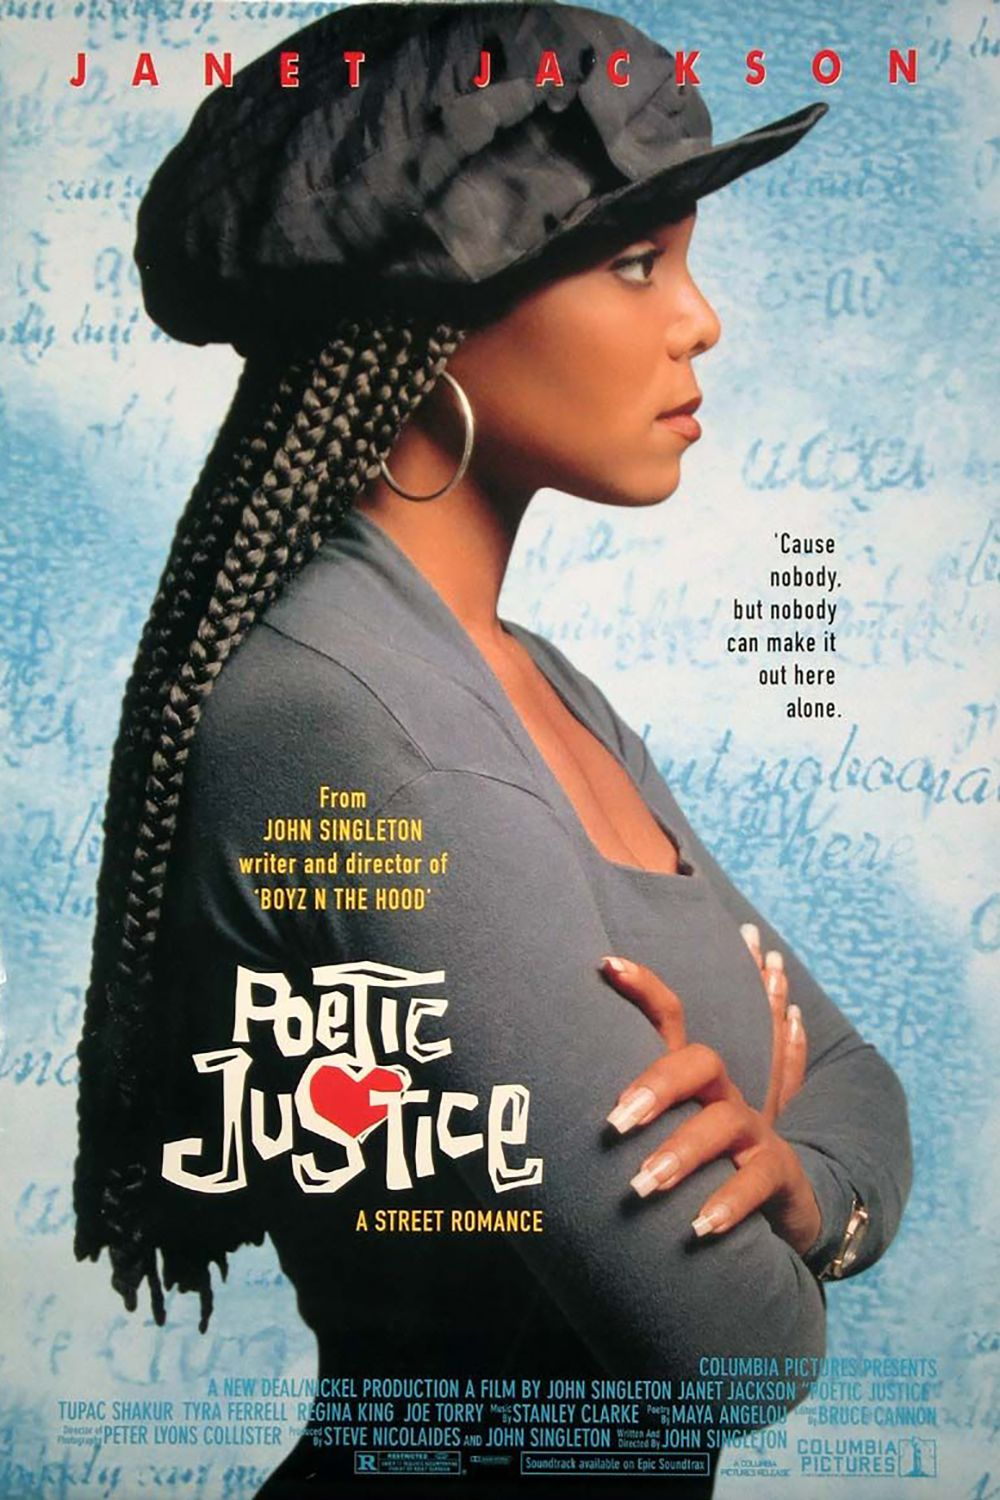 Poetic Justice (1993) The romantic drama Poetic Justice stars Janet Jackson and Tupac Shakur, with an appearance by Maya Angelou. The film tells the story of Justice (Jackson), a hairdresser who writes and recites her own poems (actually written by Maya Angelou) throughout the film.